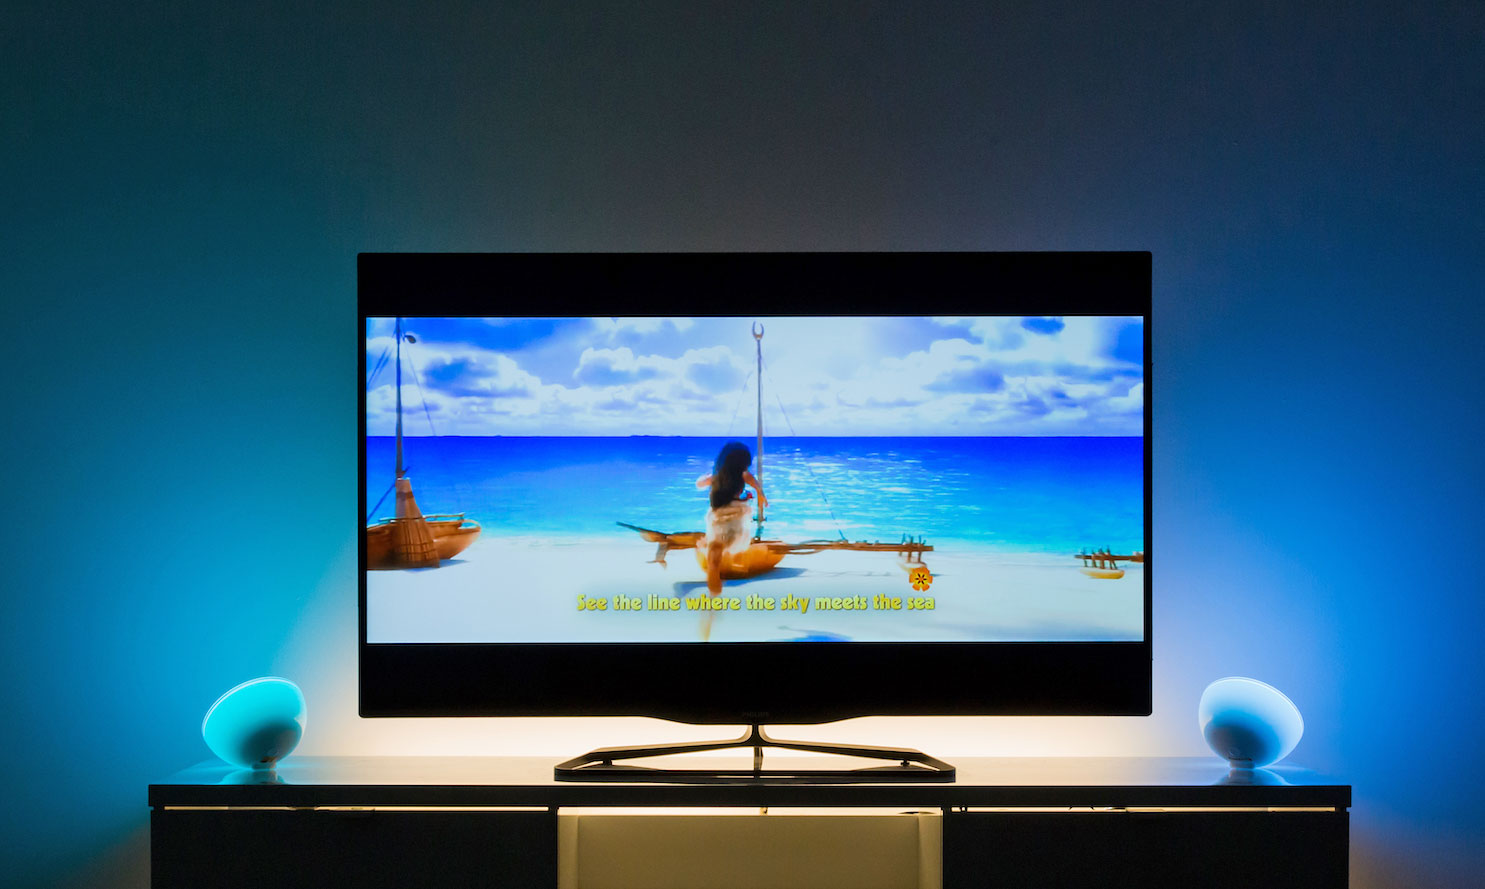 Philips\' Hue lights will soon sync with movies, games and music